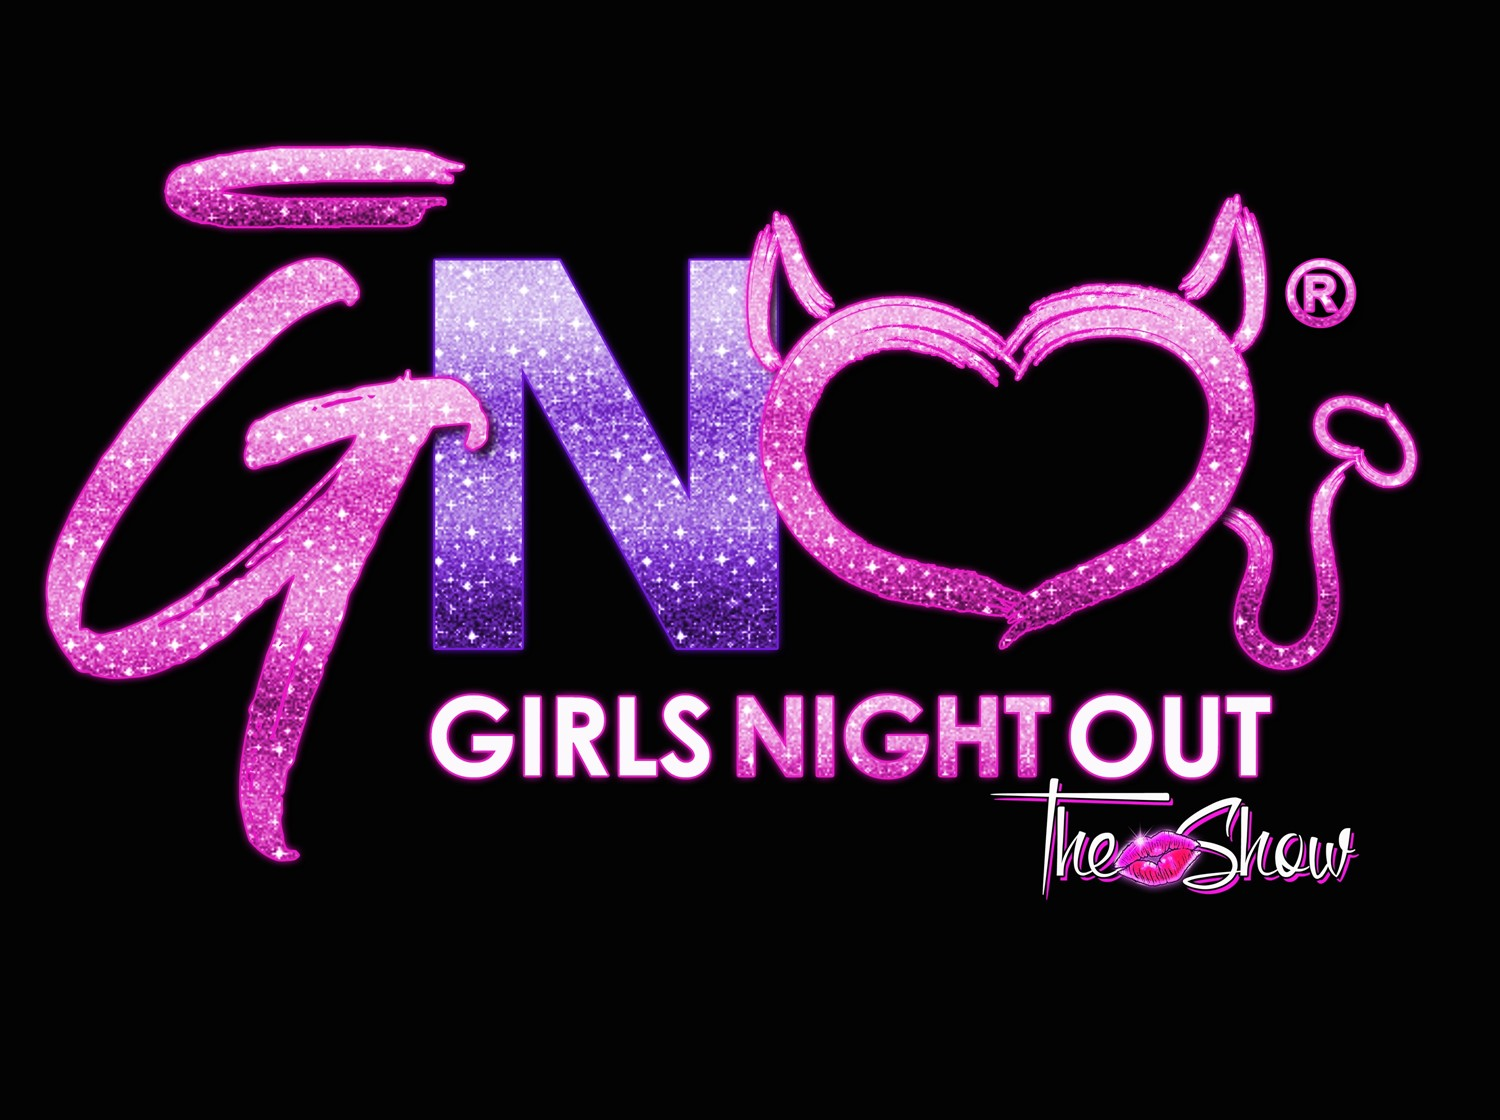 Hamburger Mary's Jax (18+) Jacksonville, FL on jun. 13, 20:00@Hamburger Mary's Jax - Buy tickets and Get information on Girls Night Out the Show tickets.girlsnightouttheshow.com